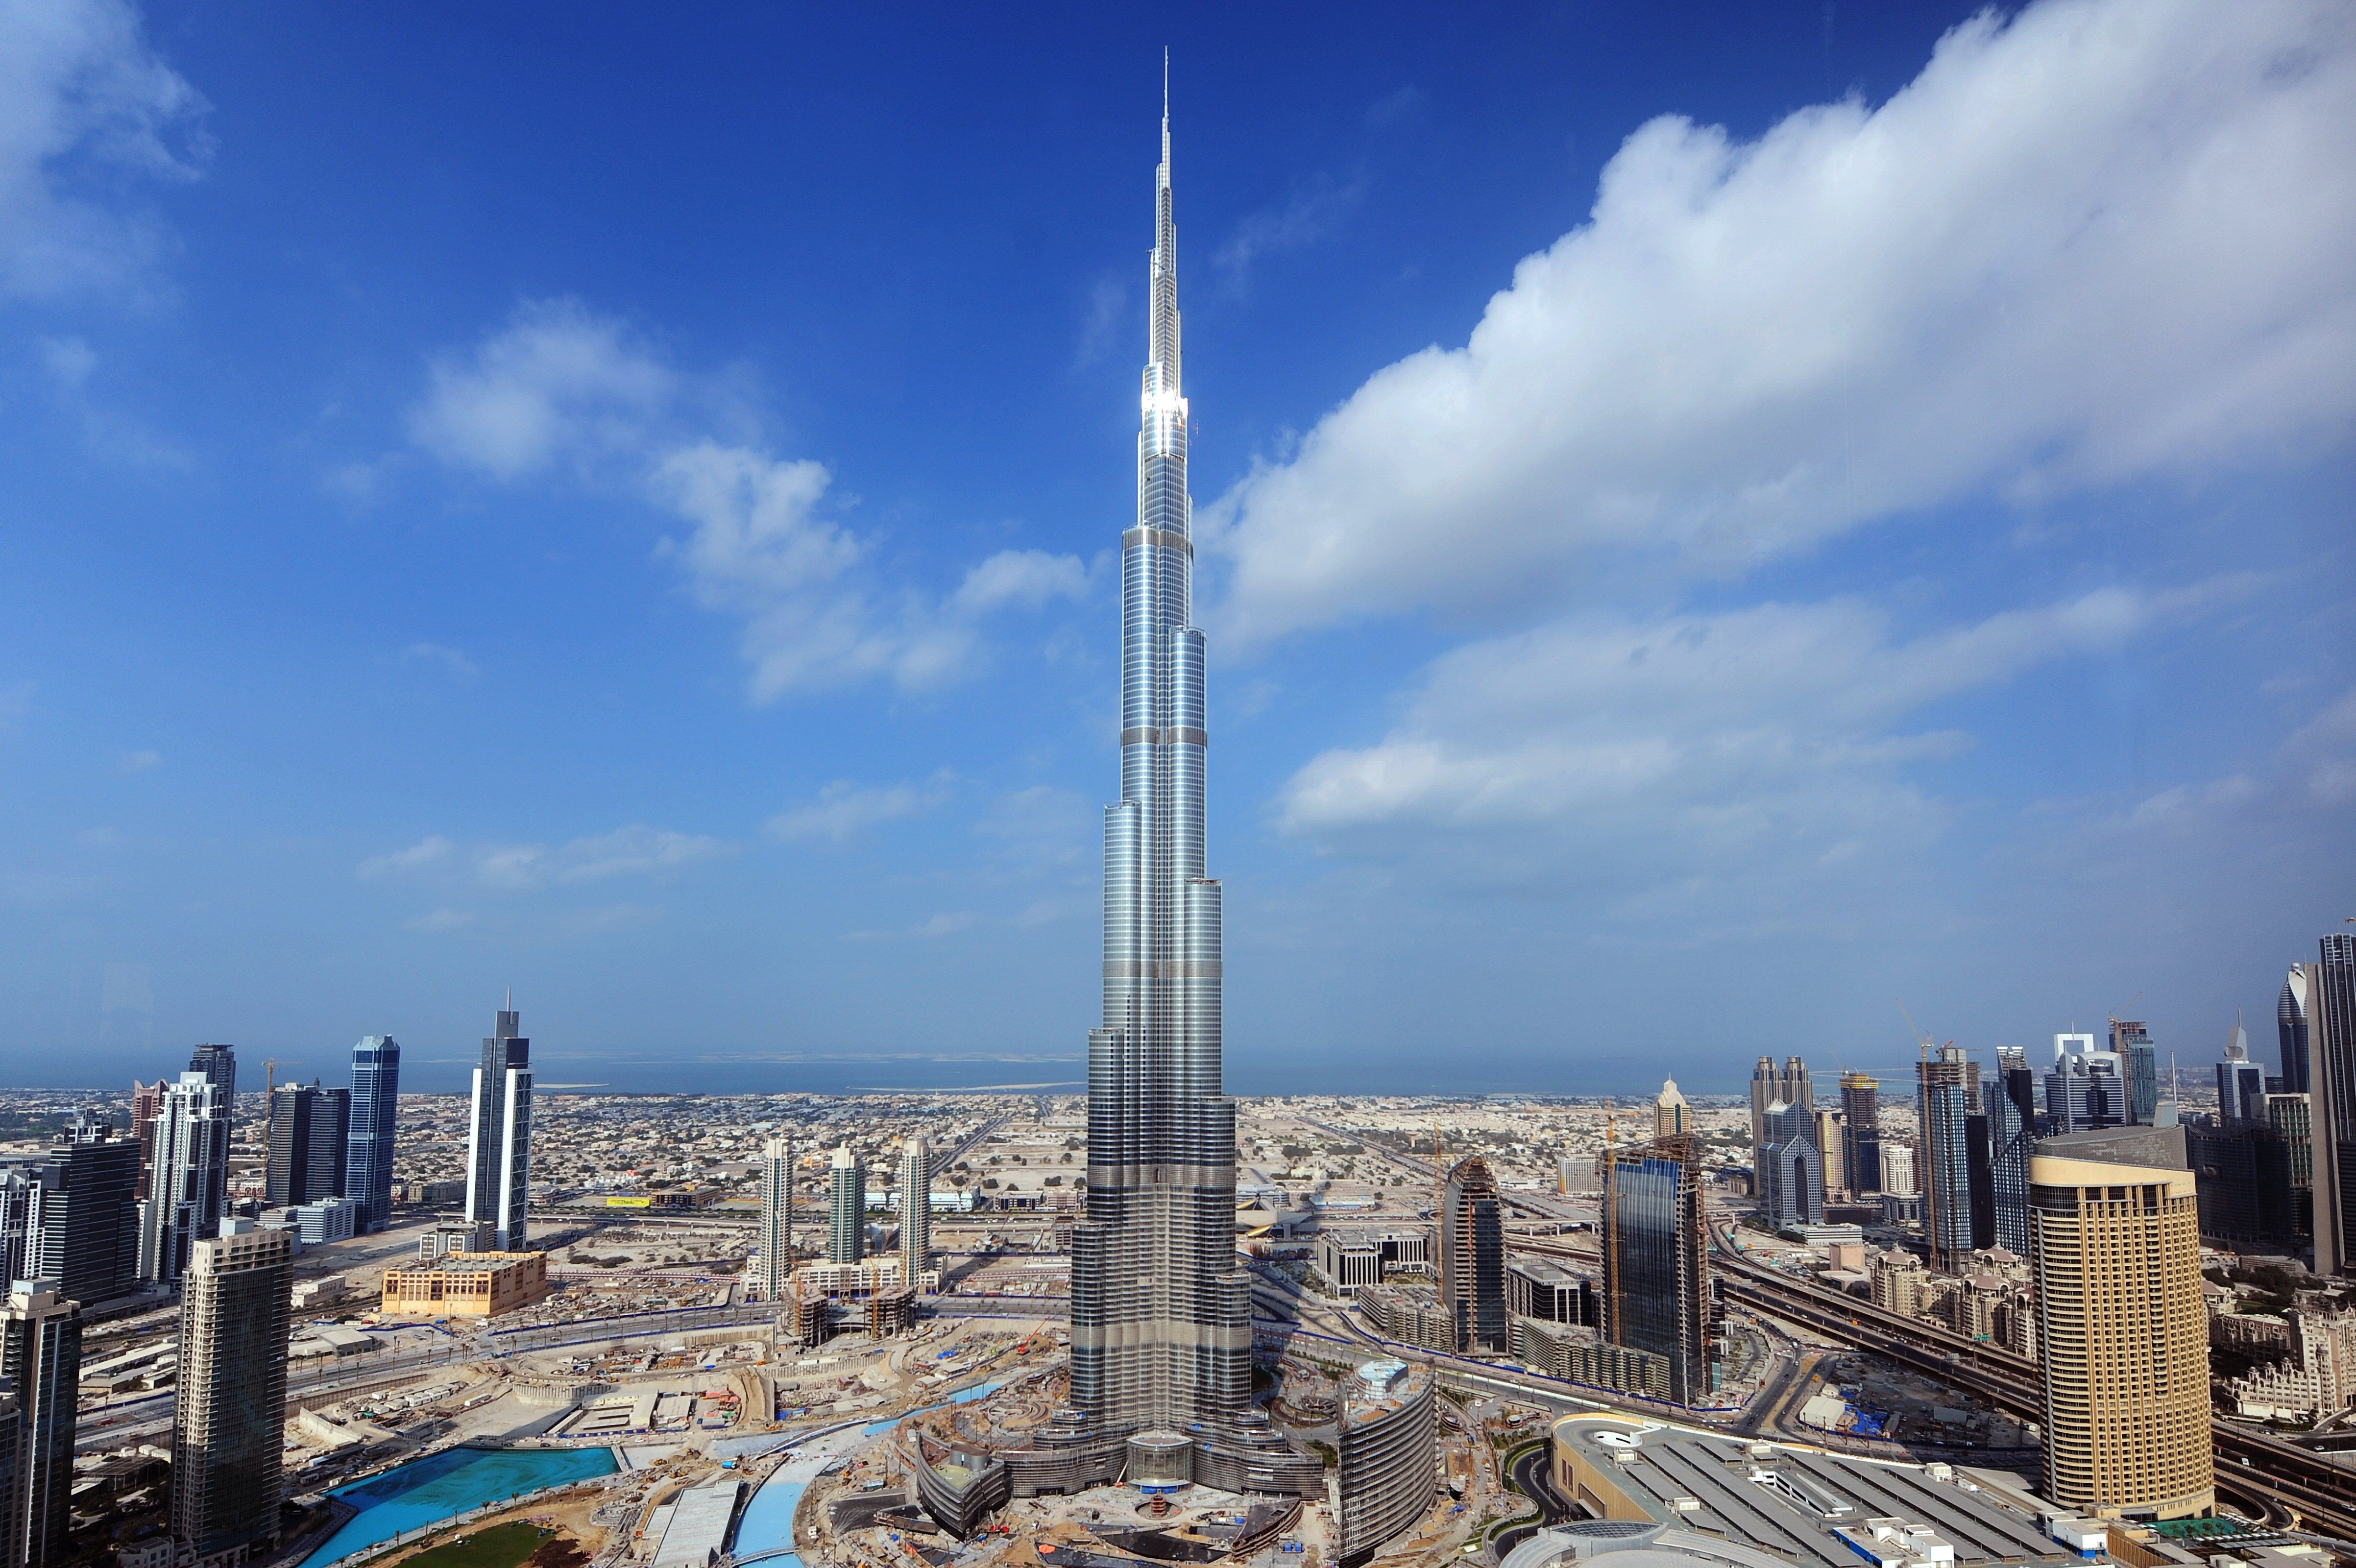 Some of the Highest Skyscrapers in the World